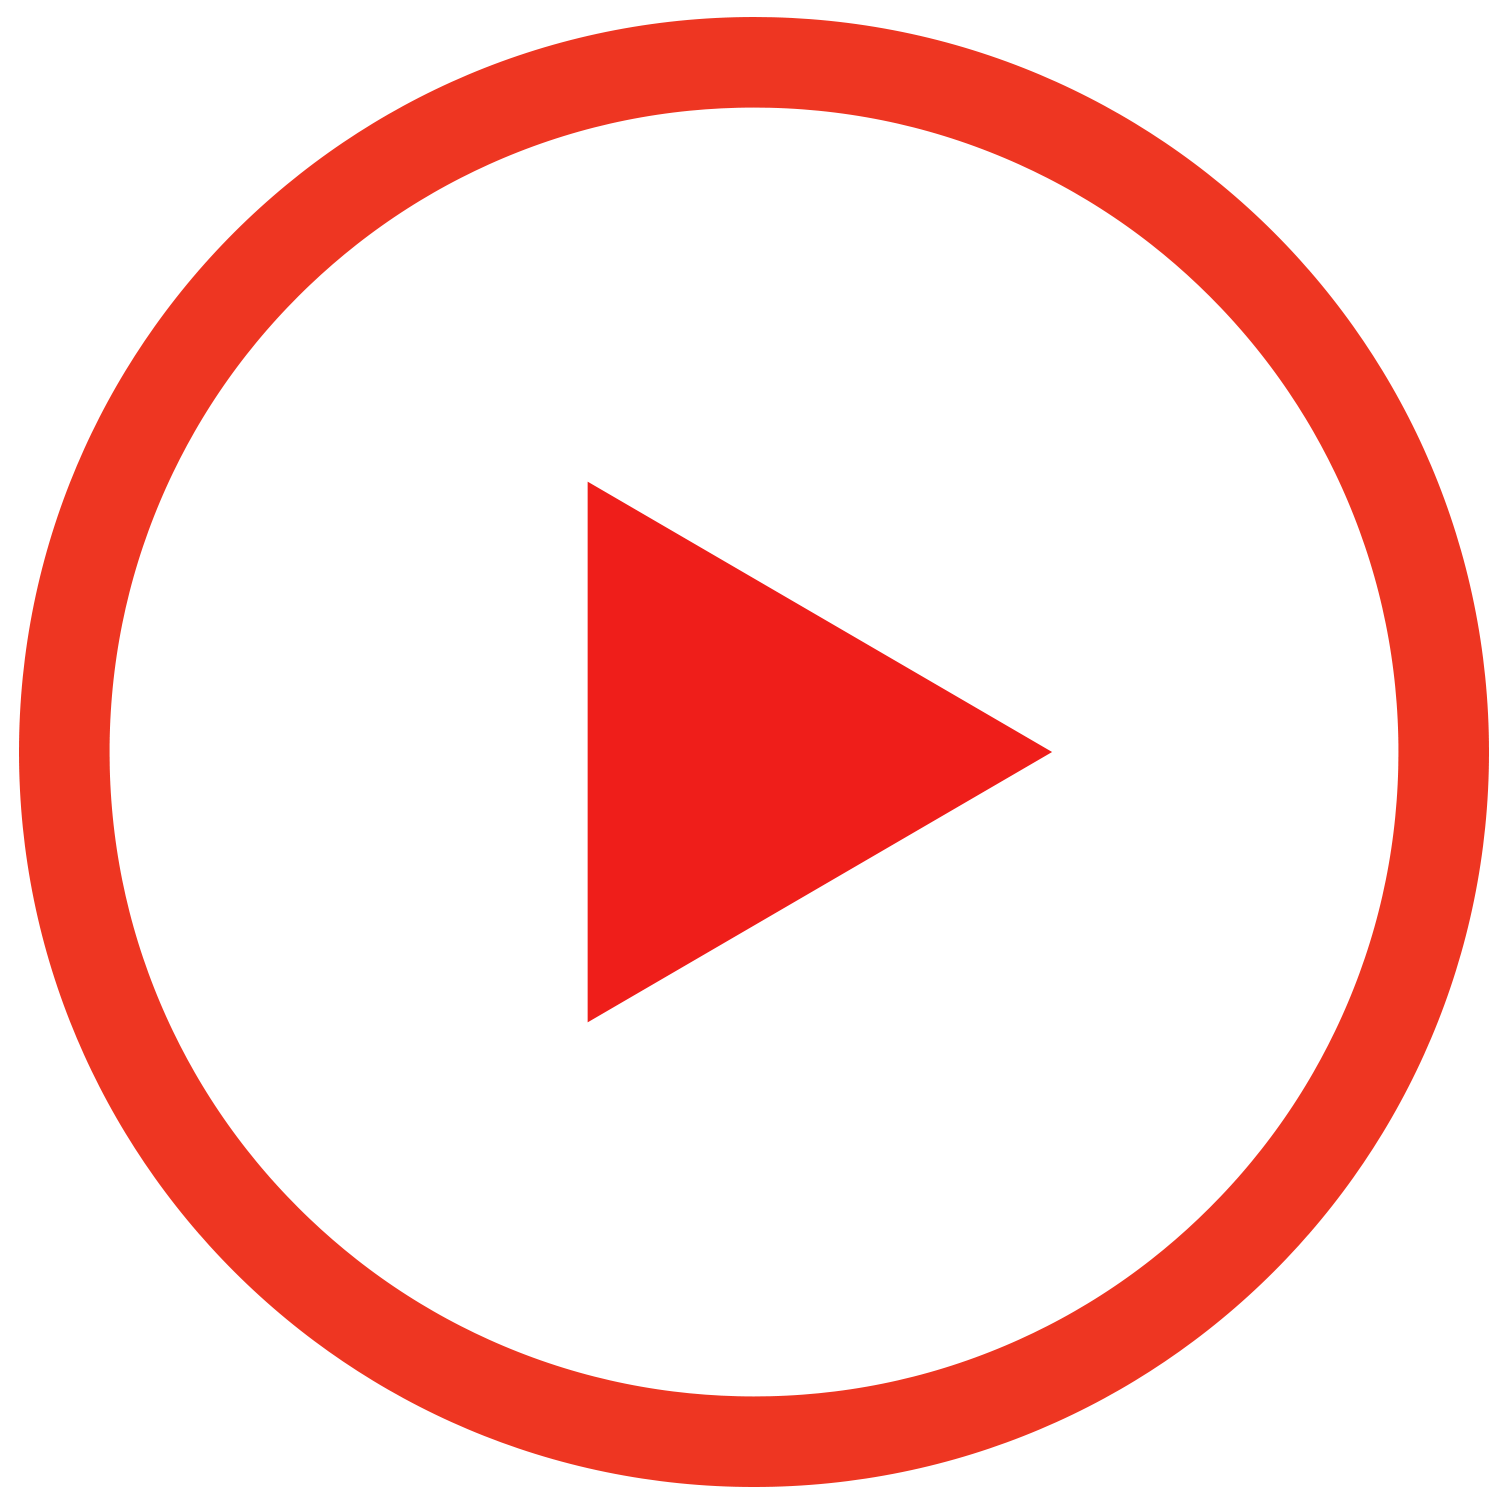 Free Stop Button Png, Download Free Clip Art, Free Clip Art.